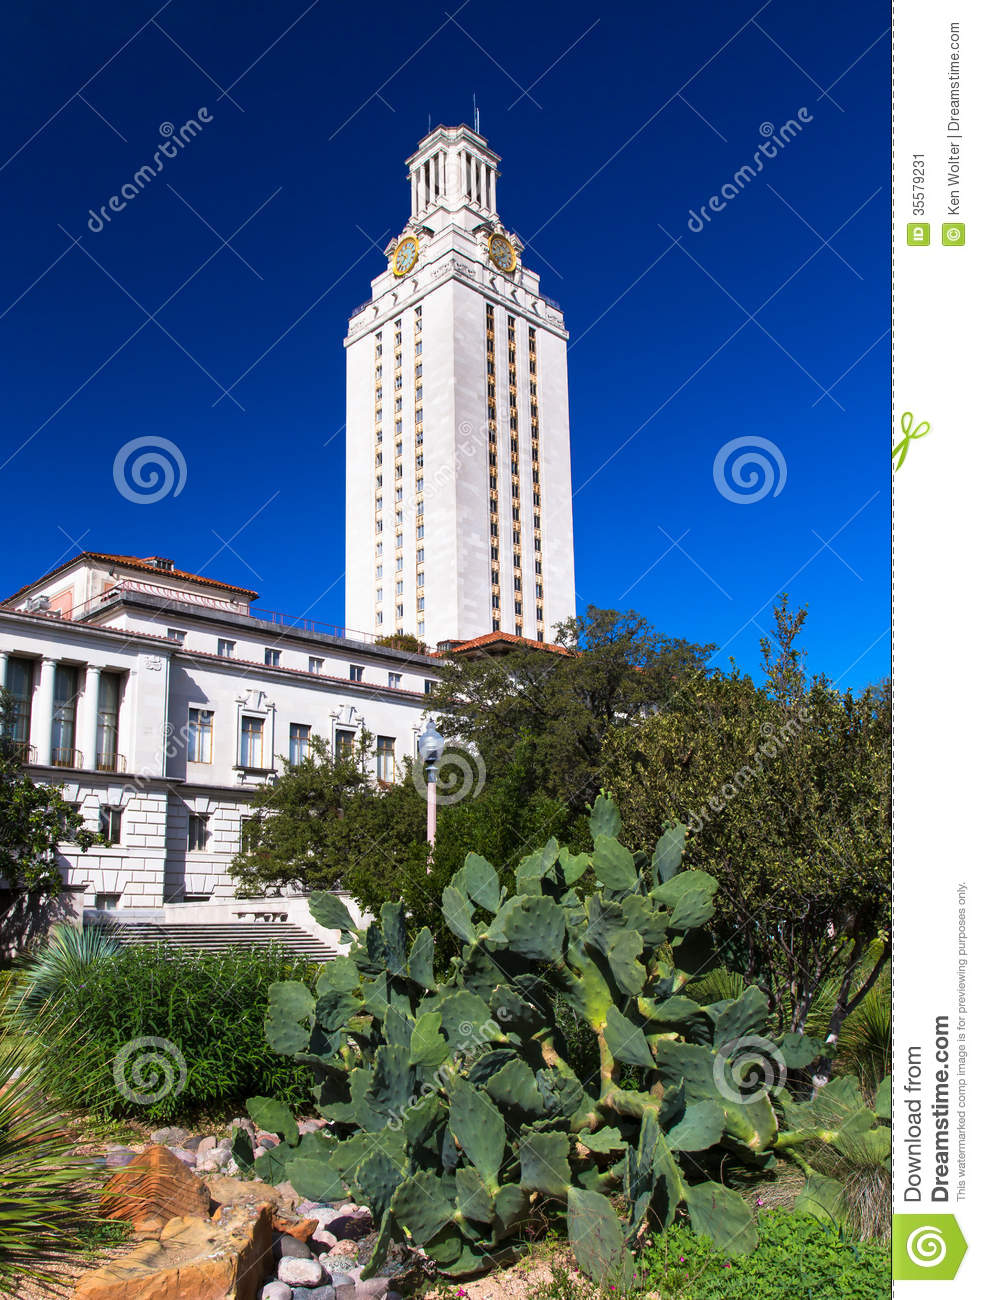 """an analysis of the design of the university of texass tower and main building San marcos farmers' market, at san antonio st, has been named the """"june downtown business of the month"""" by the san marcos main street program."""